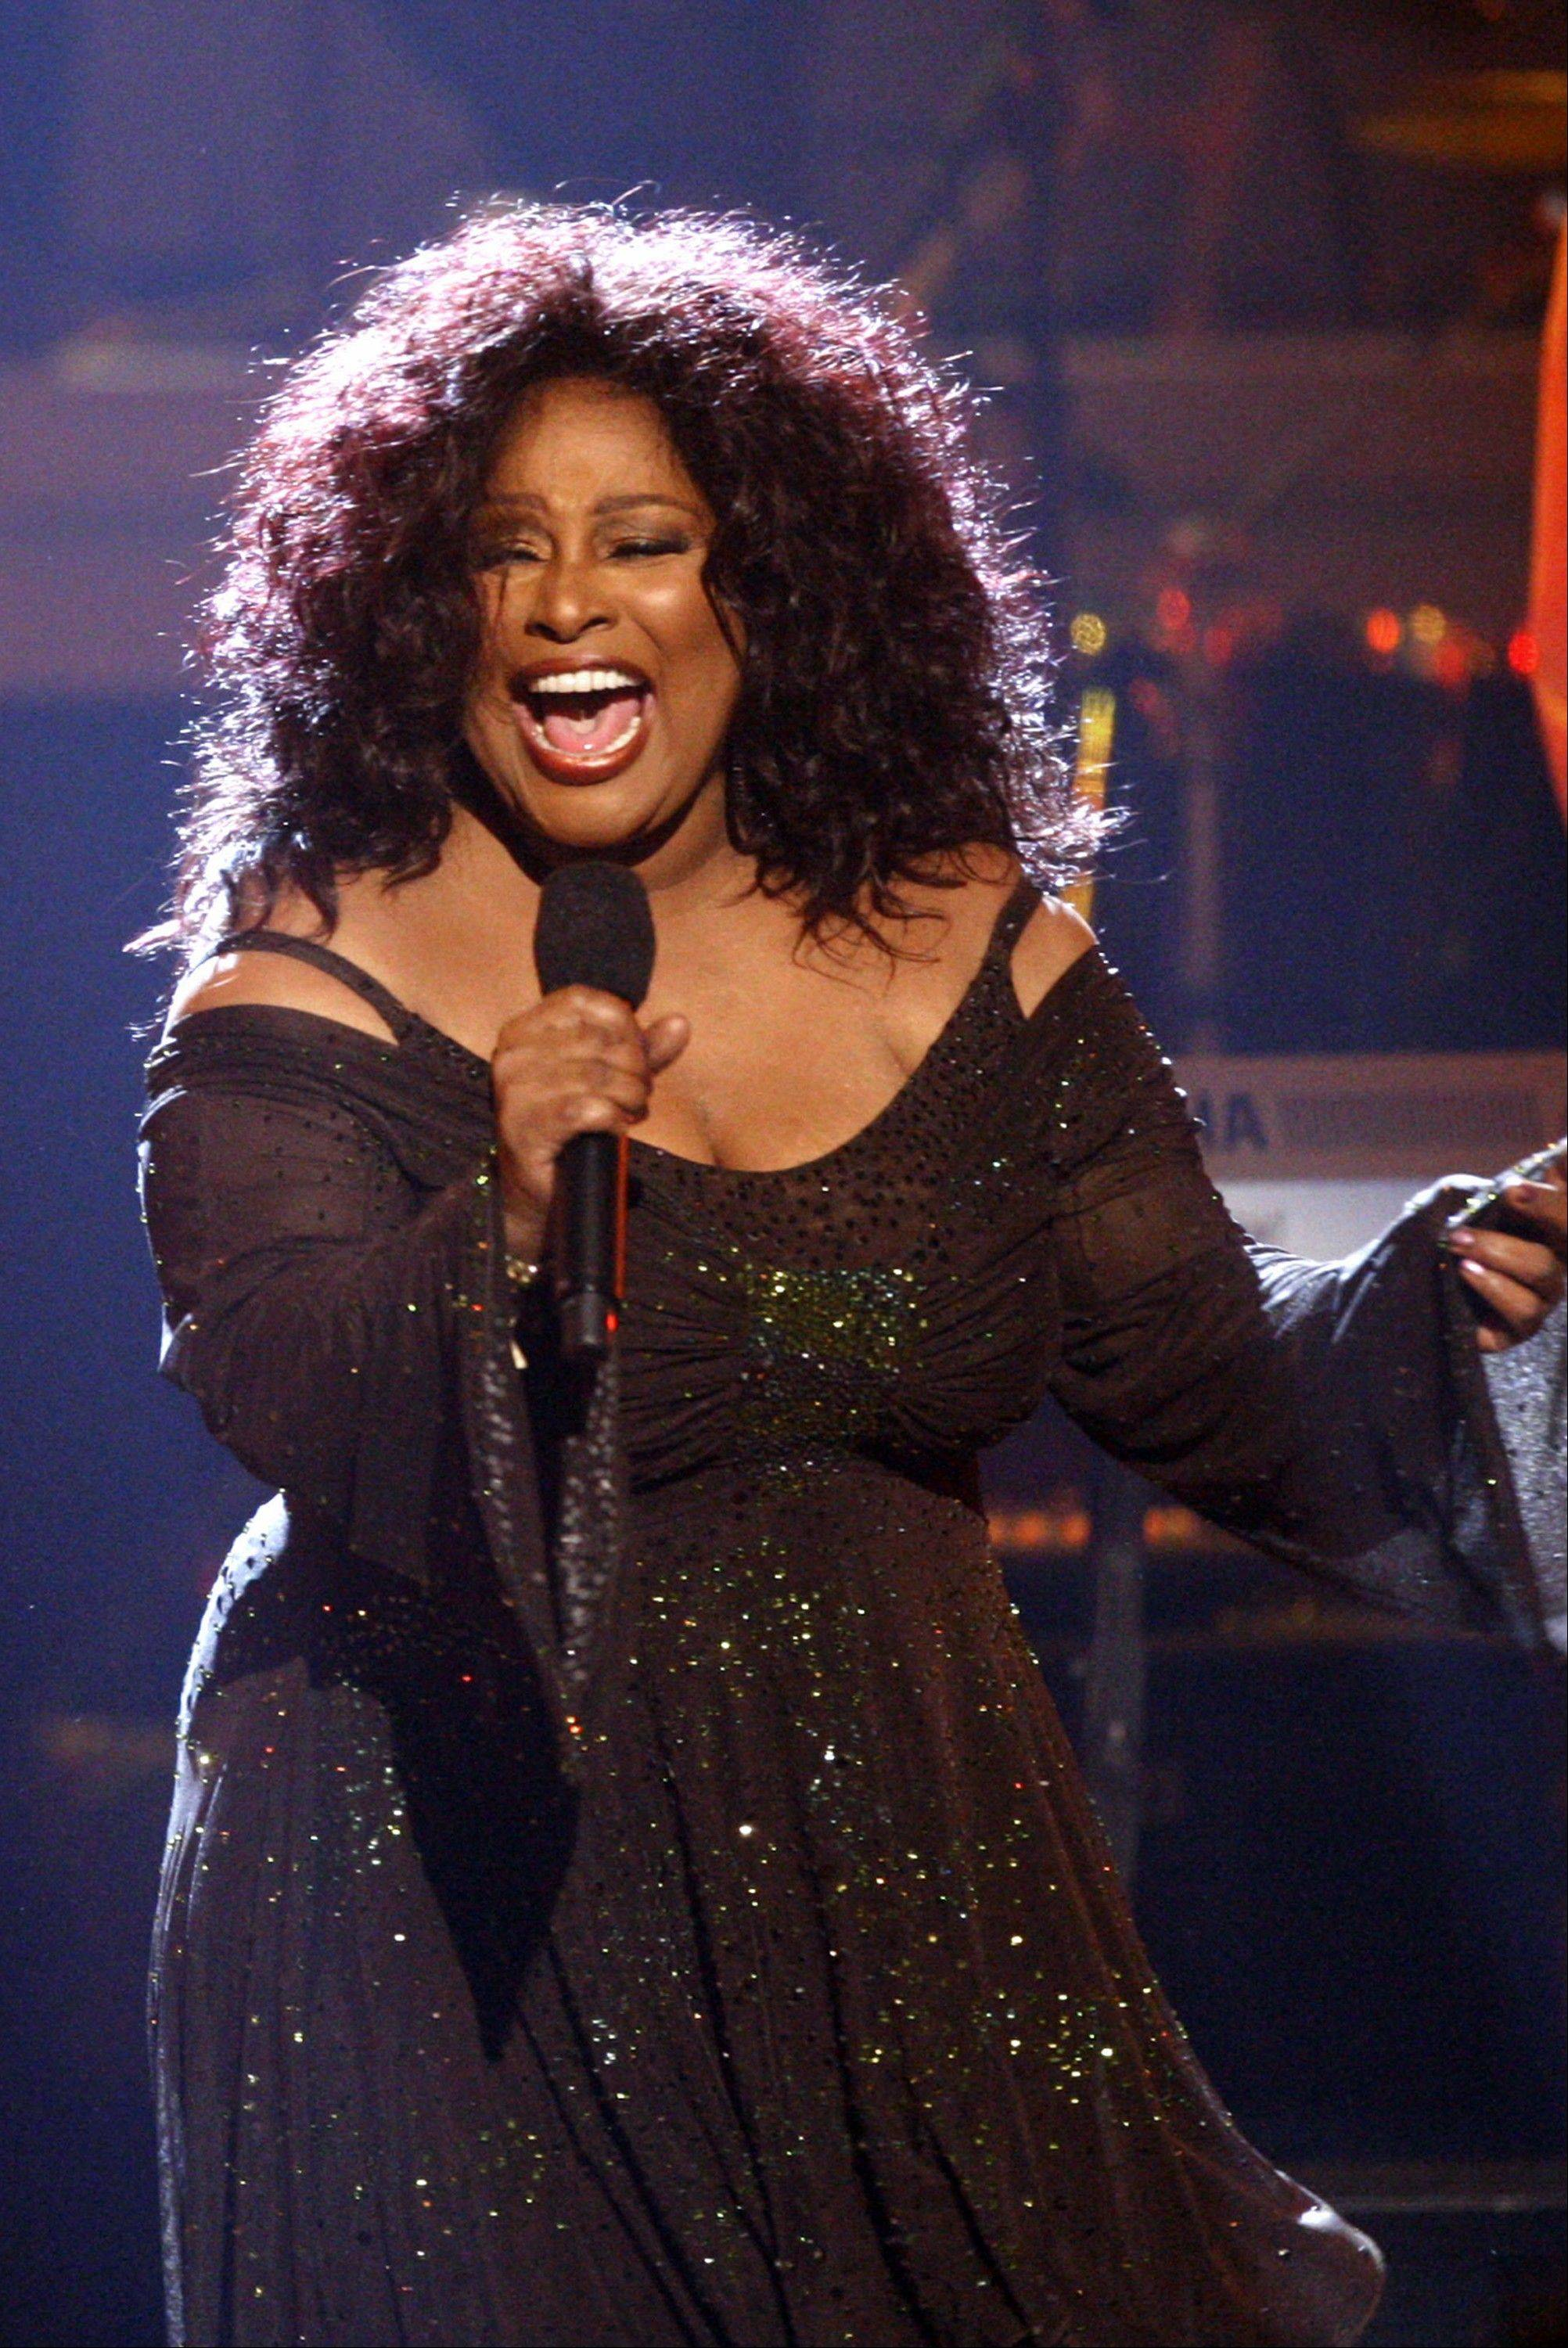 R&B star Chaka Khan will perform during the V103 25th Anniversary concert at the Allstate Arena in Rosemont on Saturday, Oct. 5.